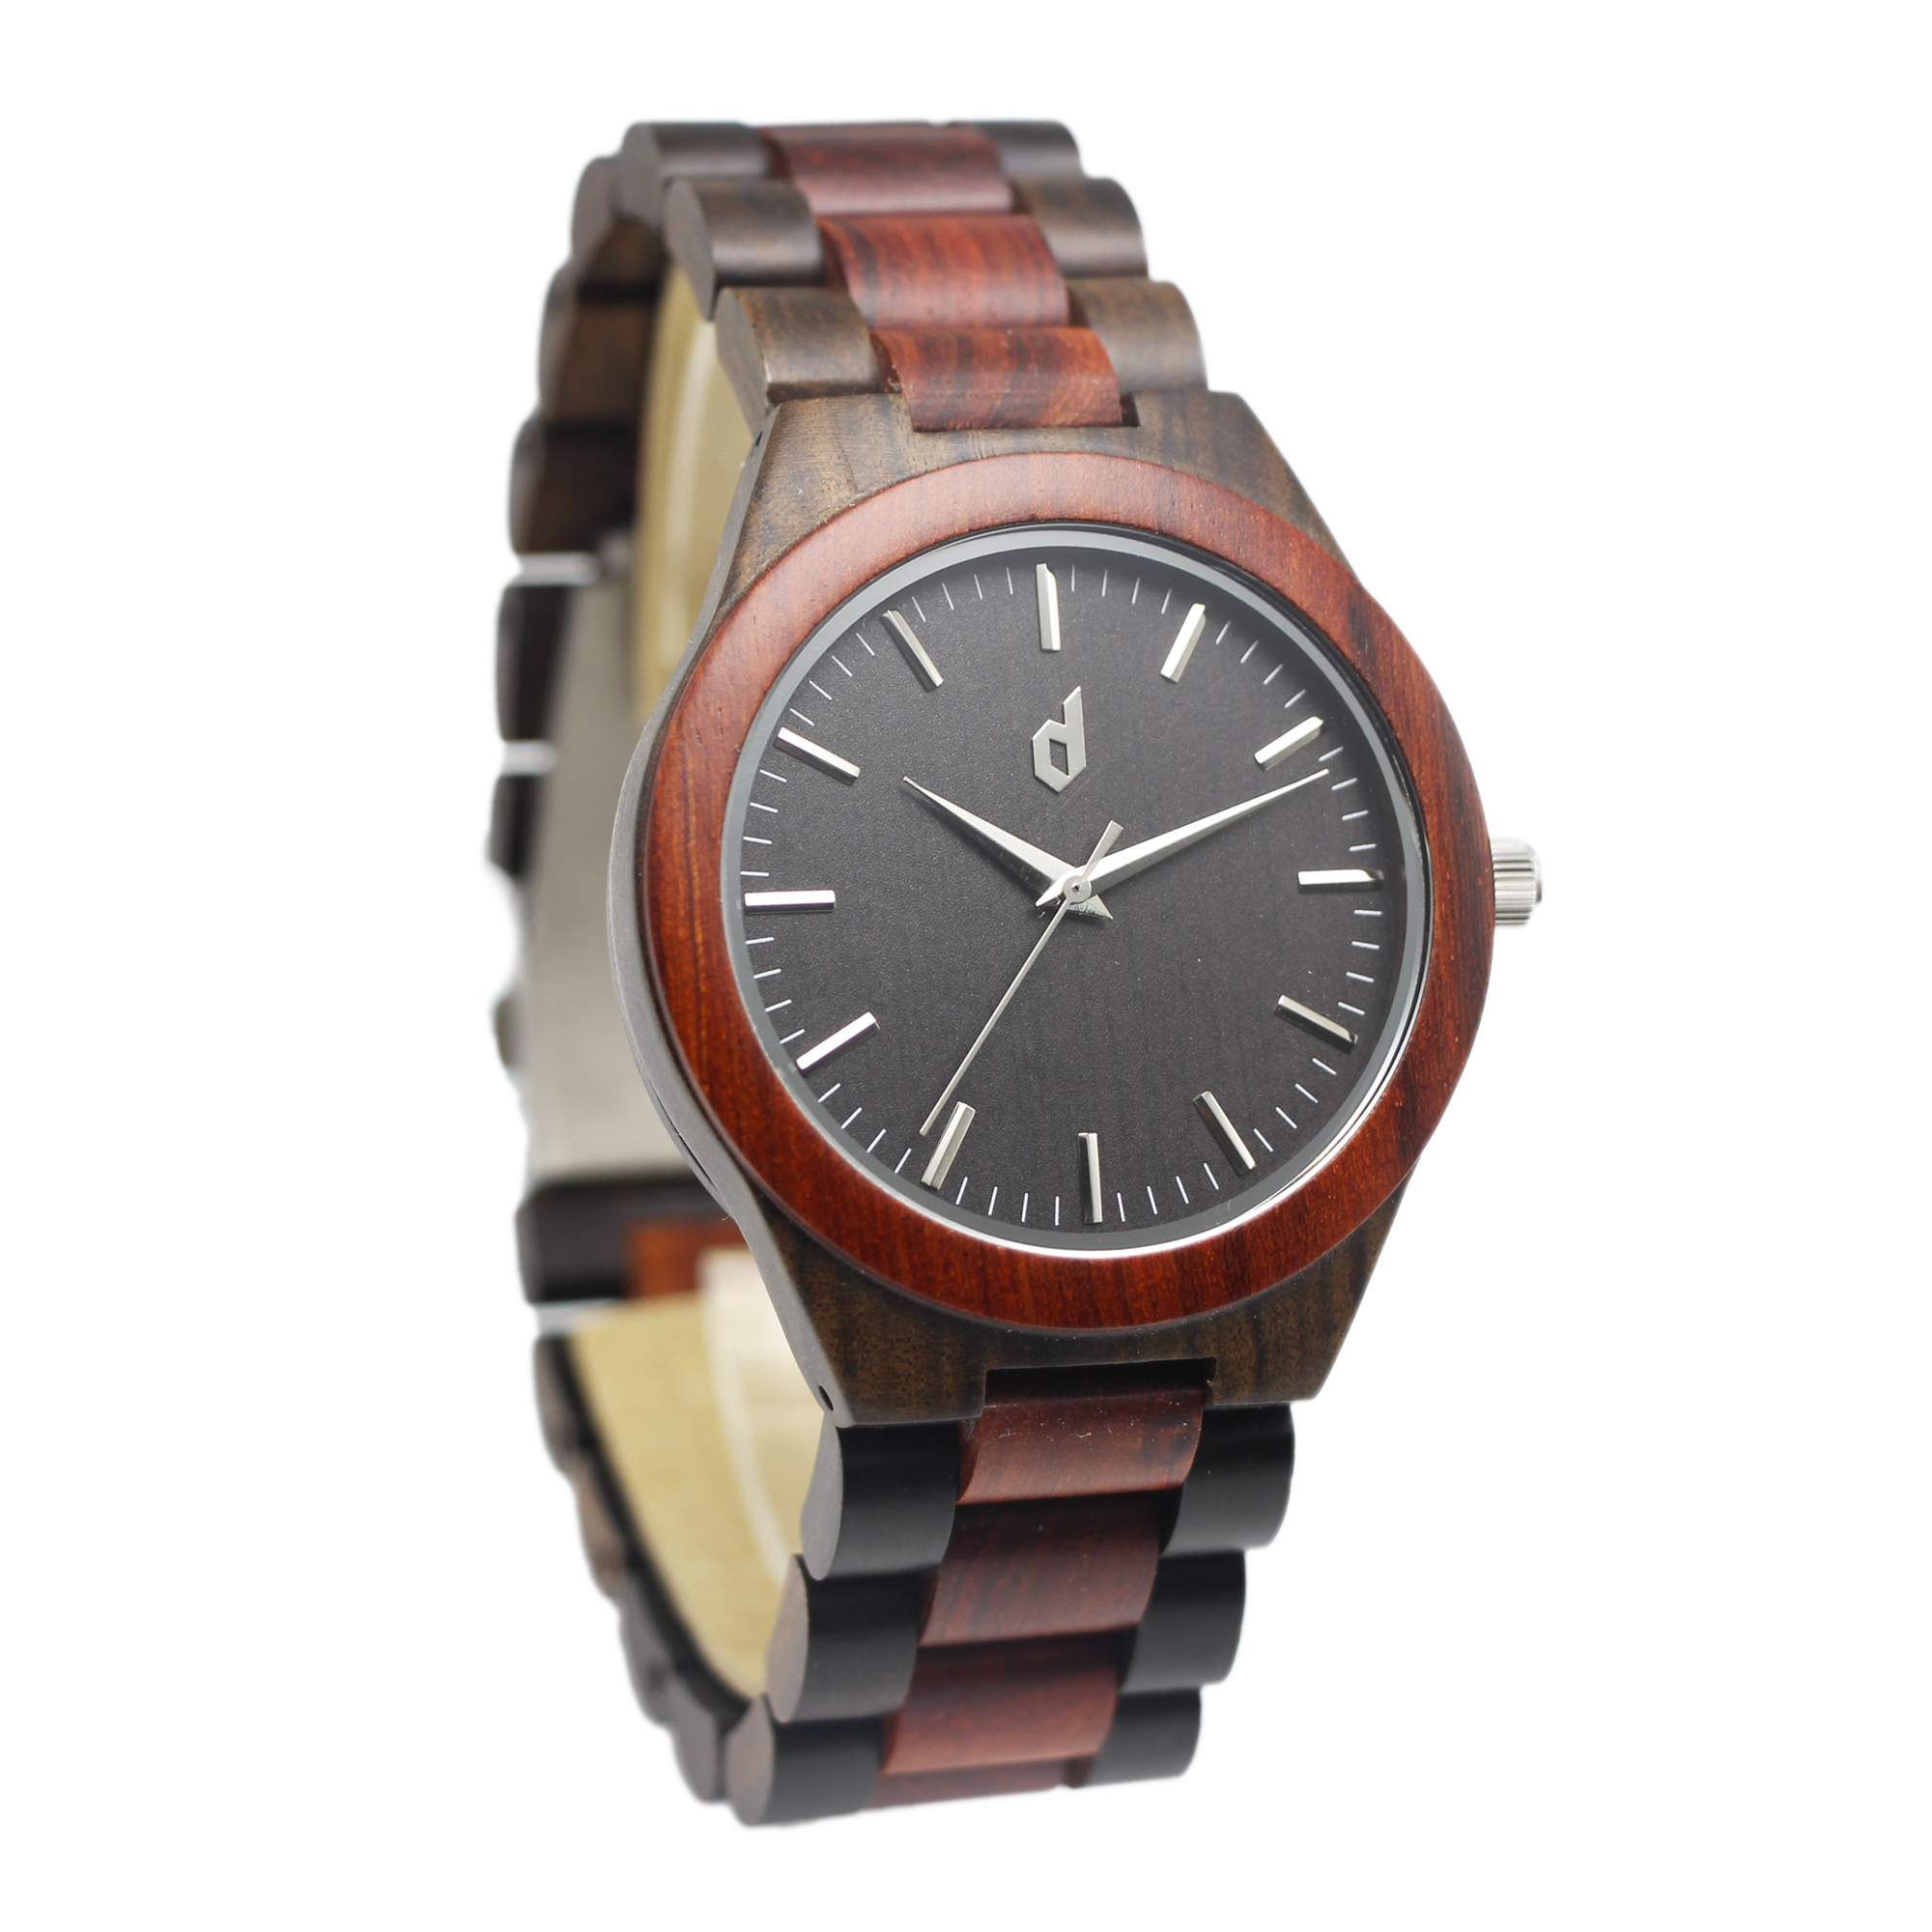 titan gift buy maroon more shopping watch kerala views to wedding gifts set online watches send